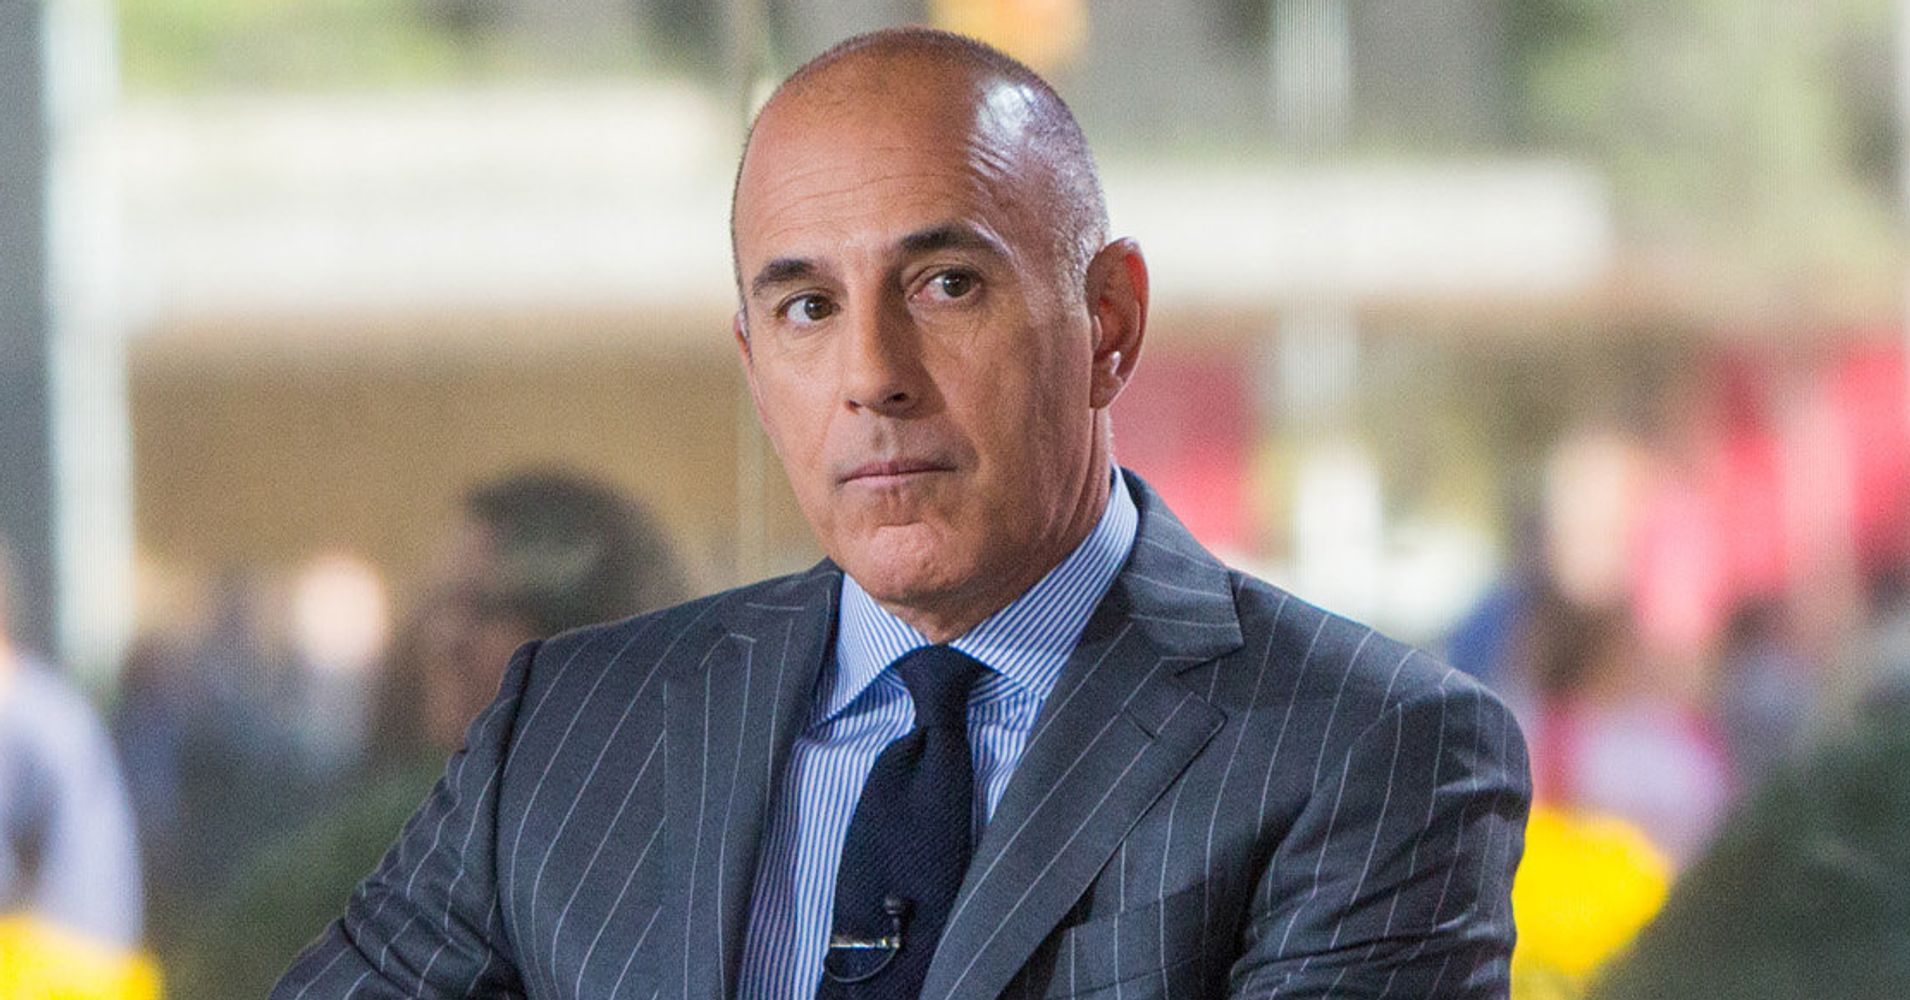 Matt Lauer's First Accuser Lives 'In Constant Fear' Of Being Identified